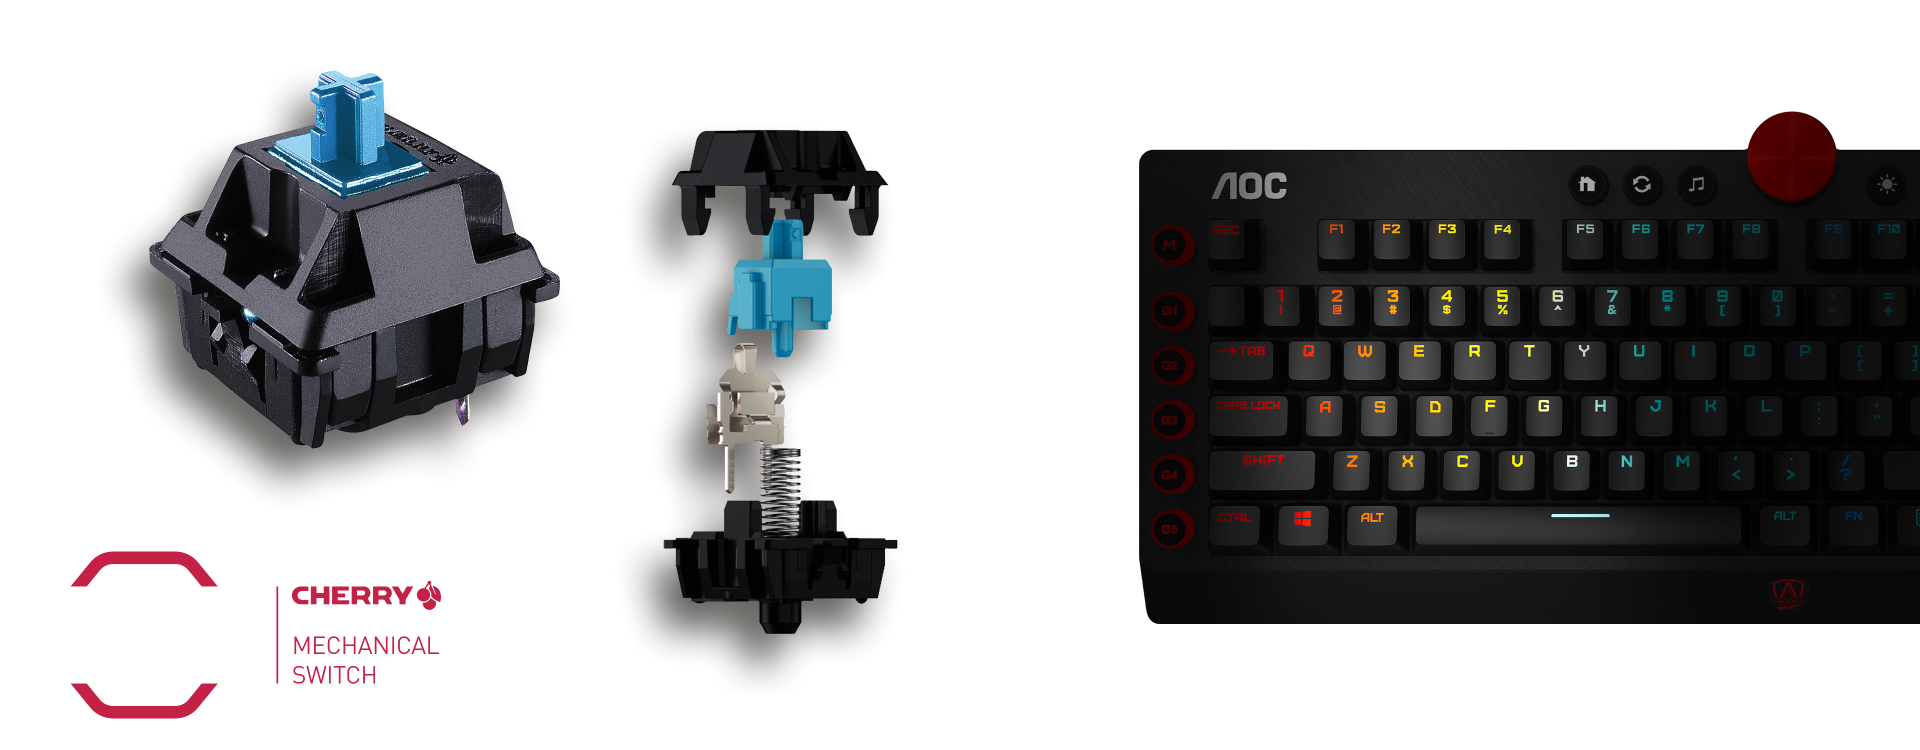 AGON_AGK700_FV_FW_CHERRY_SWITCHES_BLUE_FRONT.png